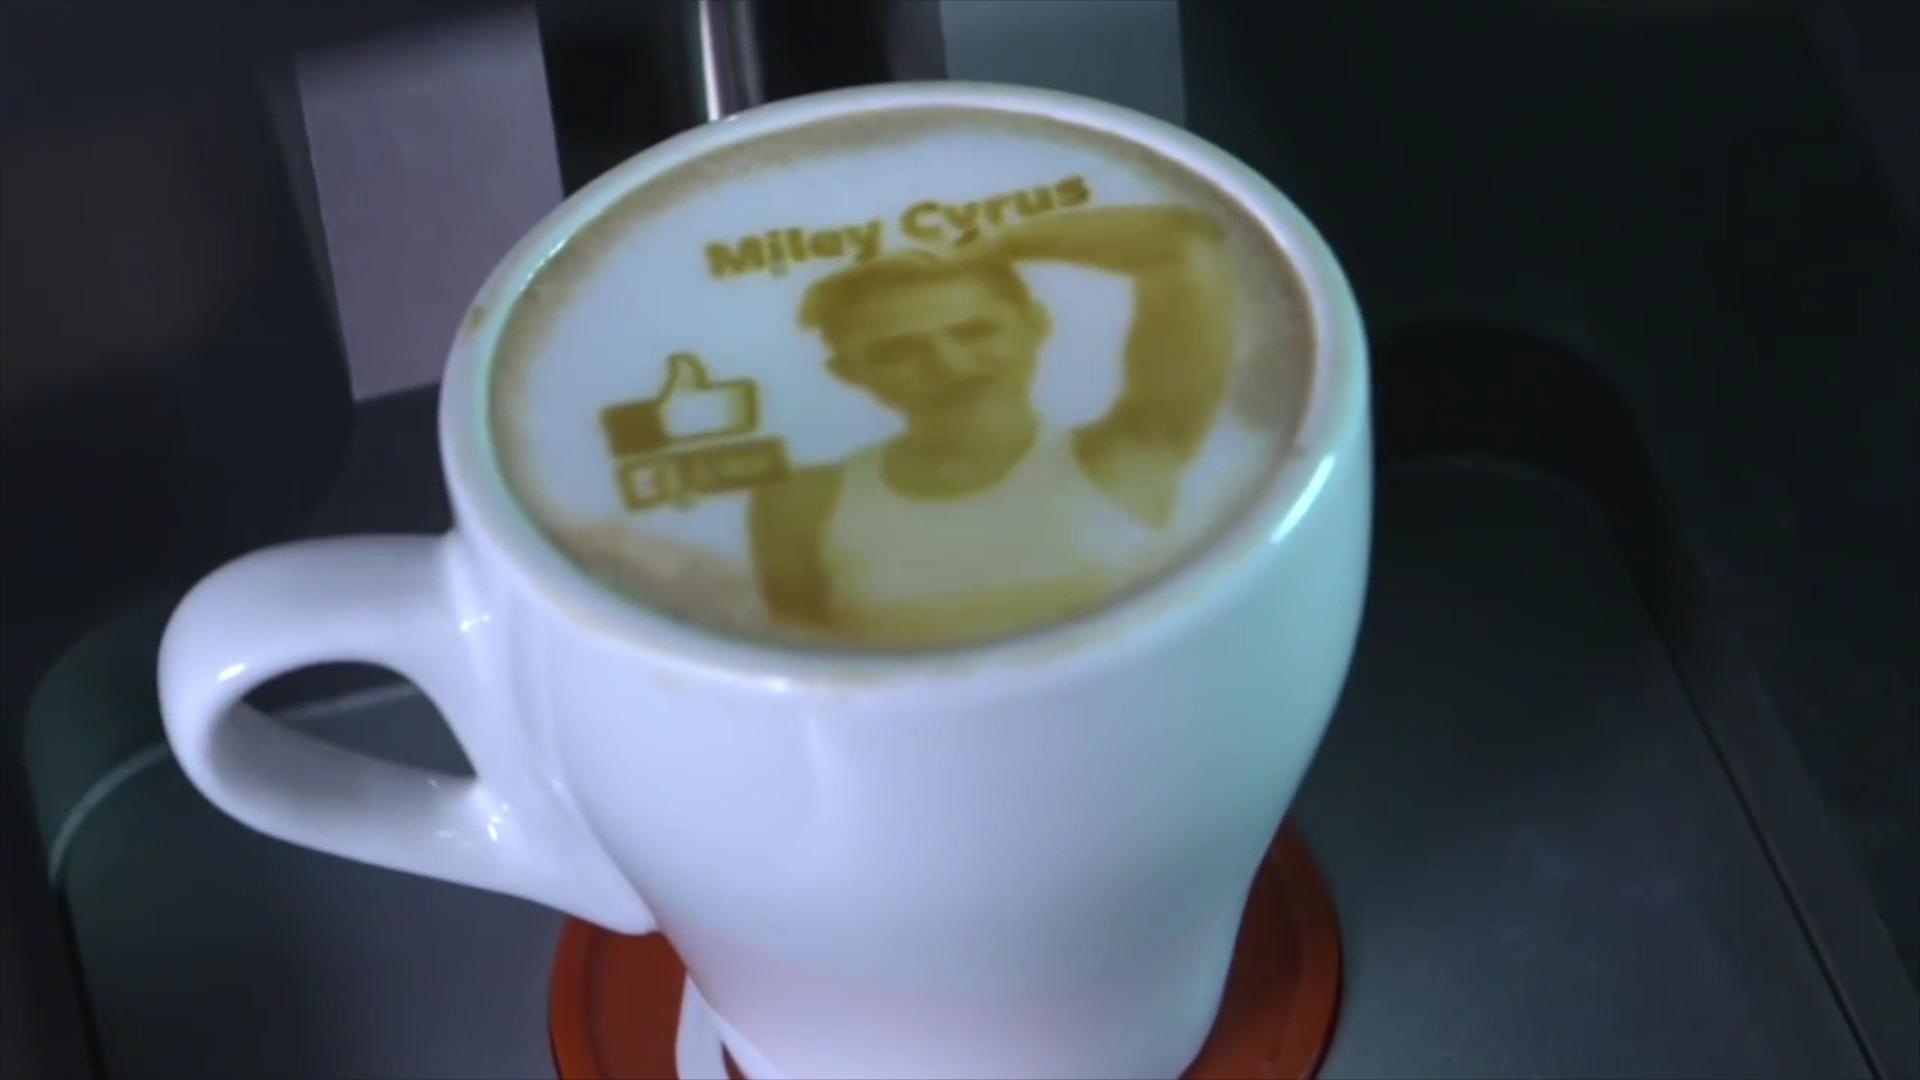 Latte art machine draws Miley Cyrus' face on your coffee